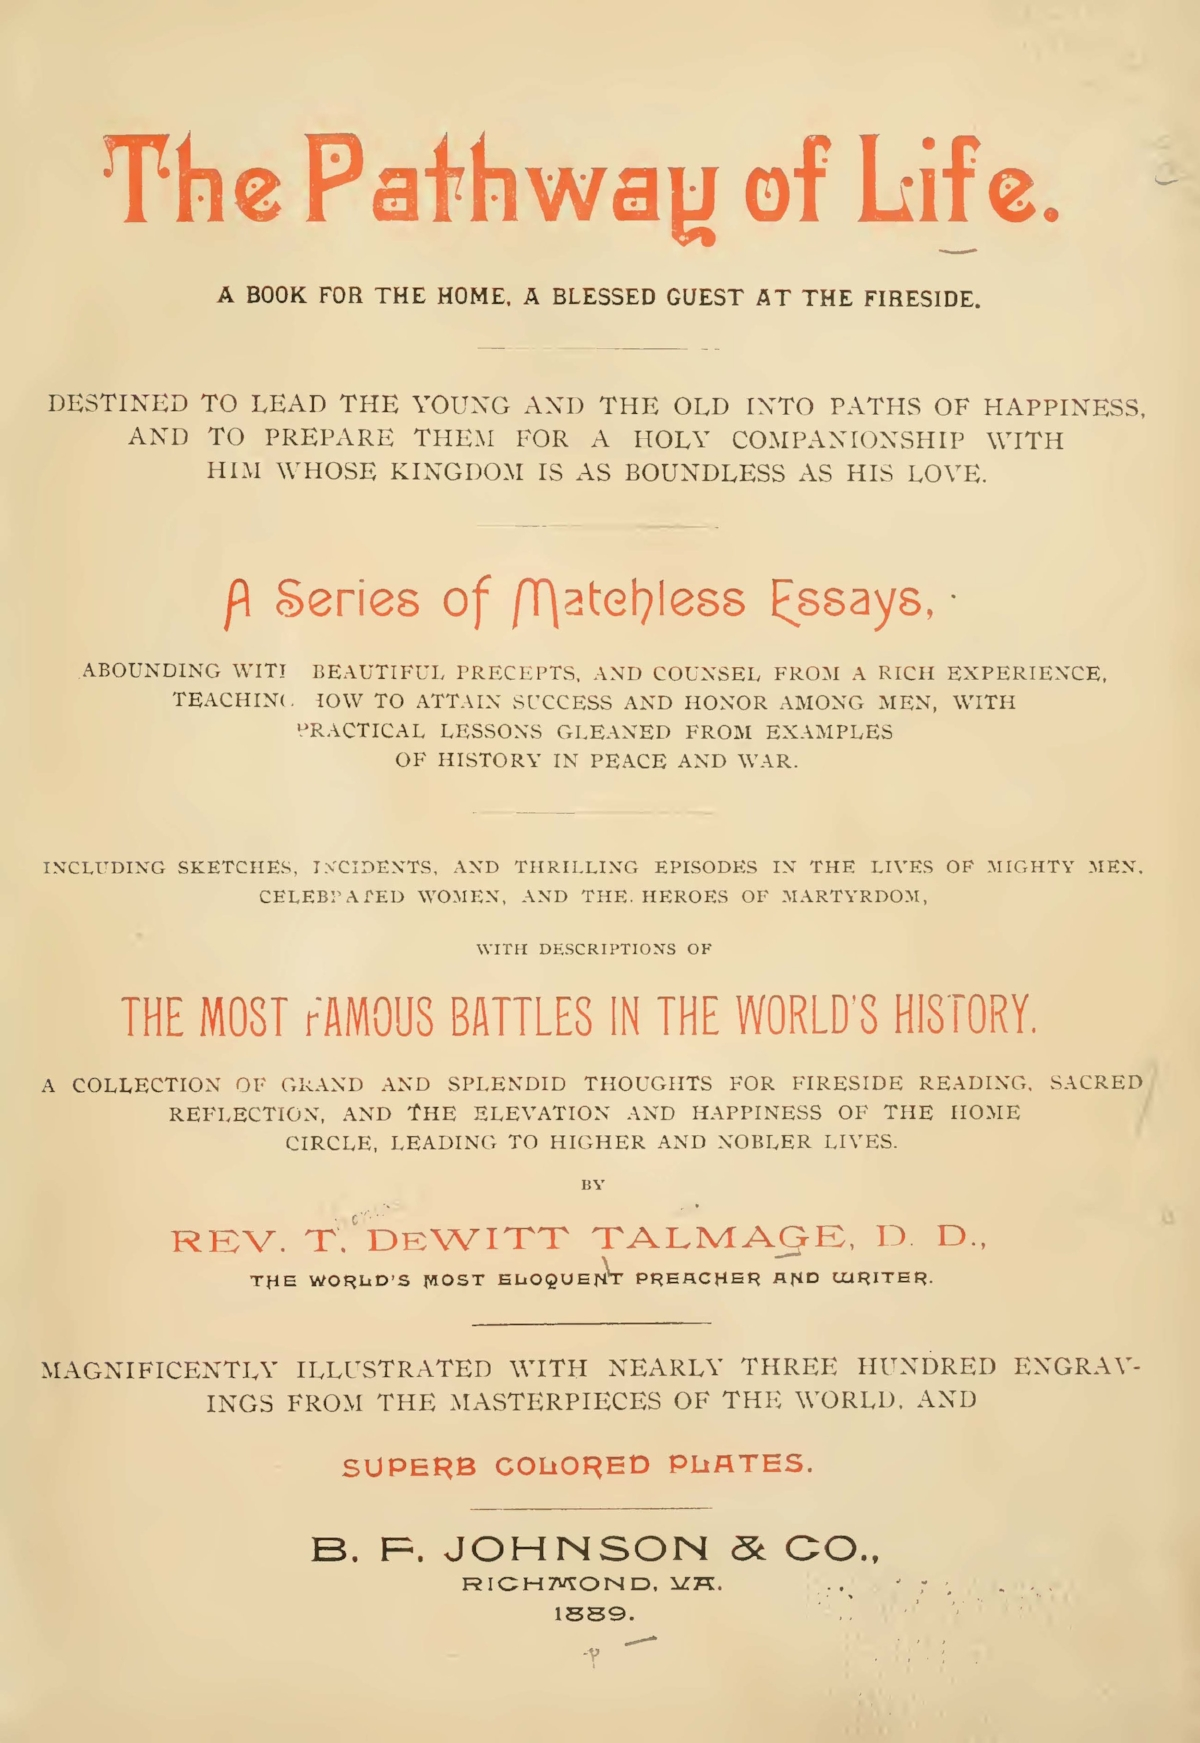 Talmage, Thomas De Witt, The Pathway of Life Title Page.jpg